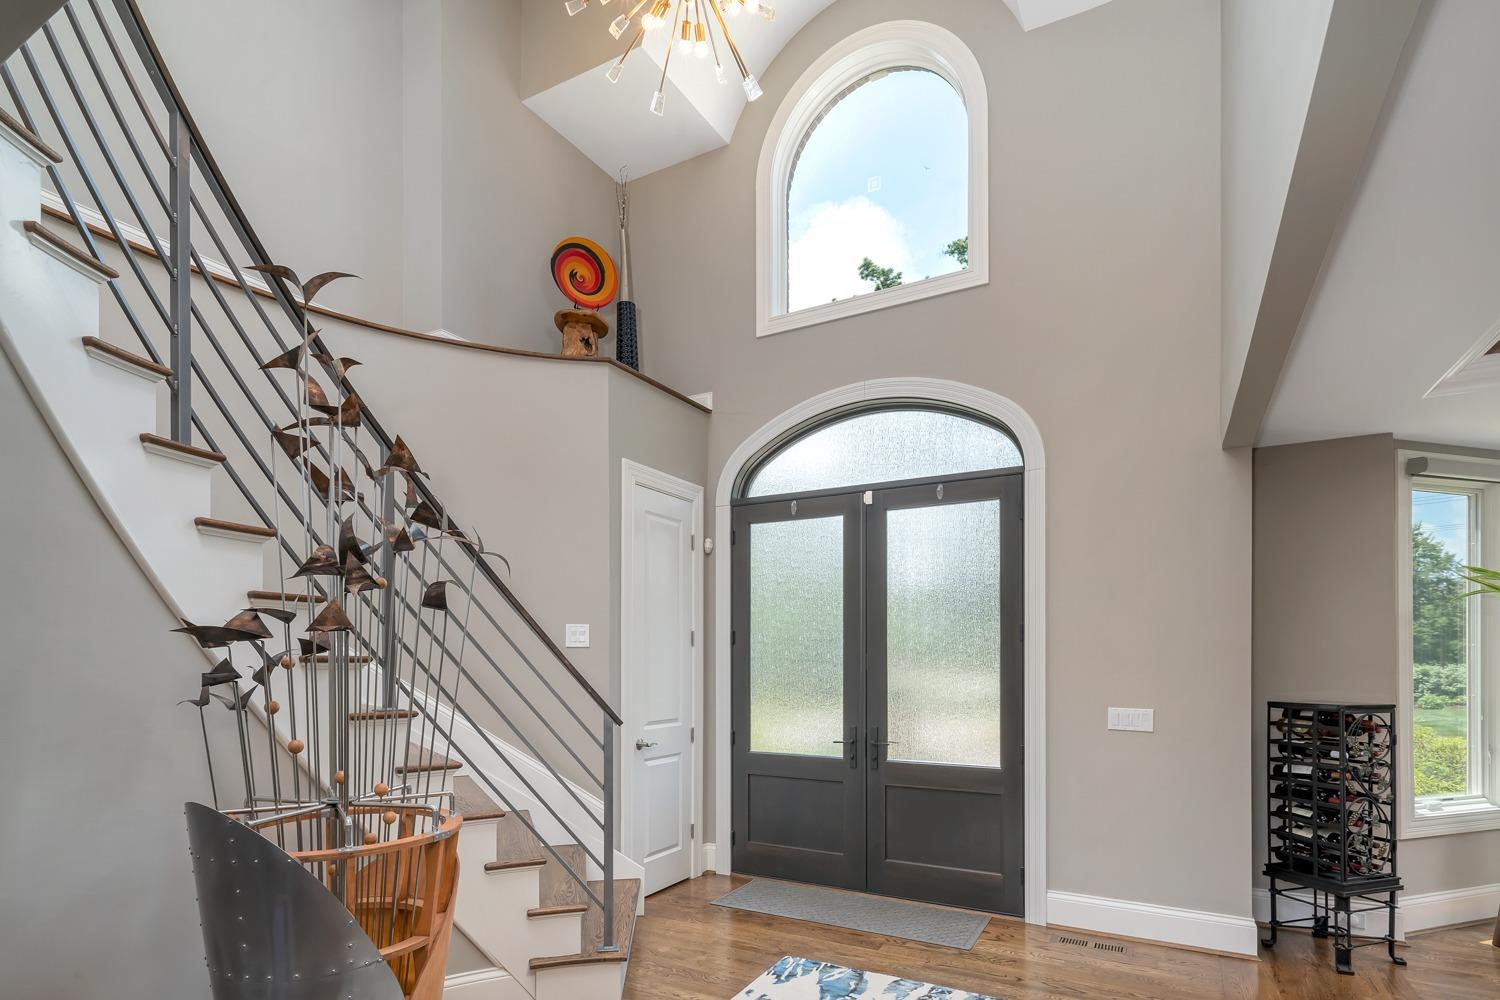 Entry features vaulted ceilings, hardwood floors, a double door with transom, and a coat closet.